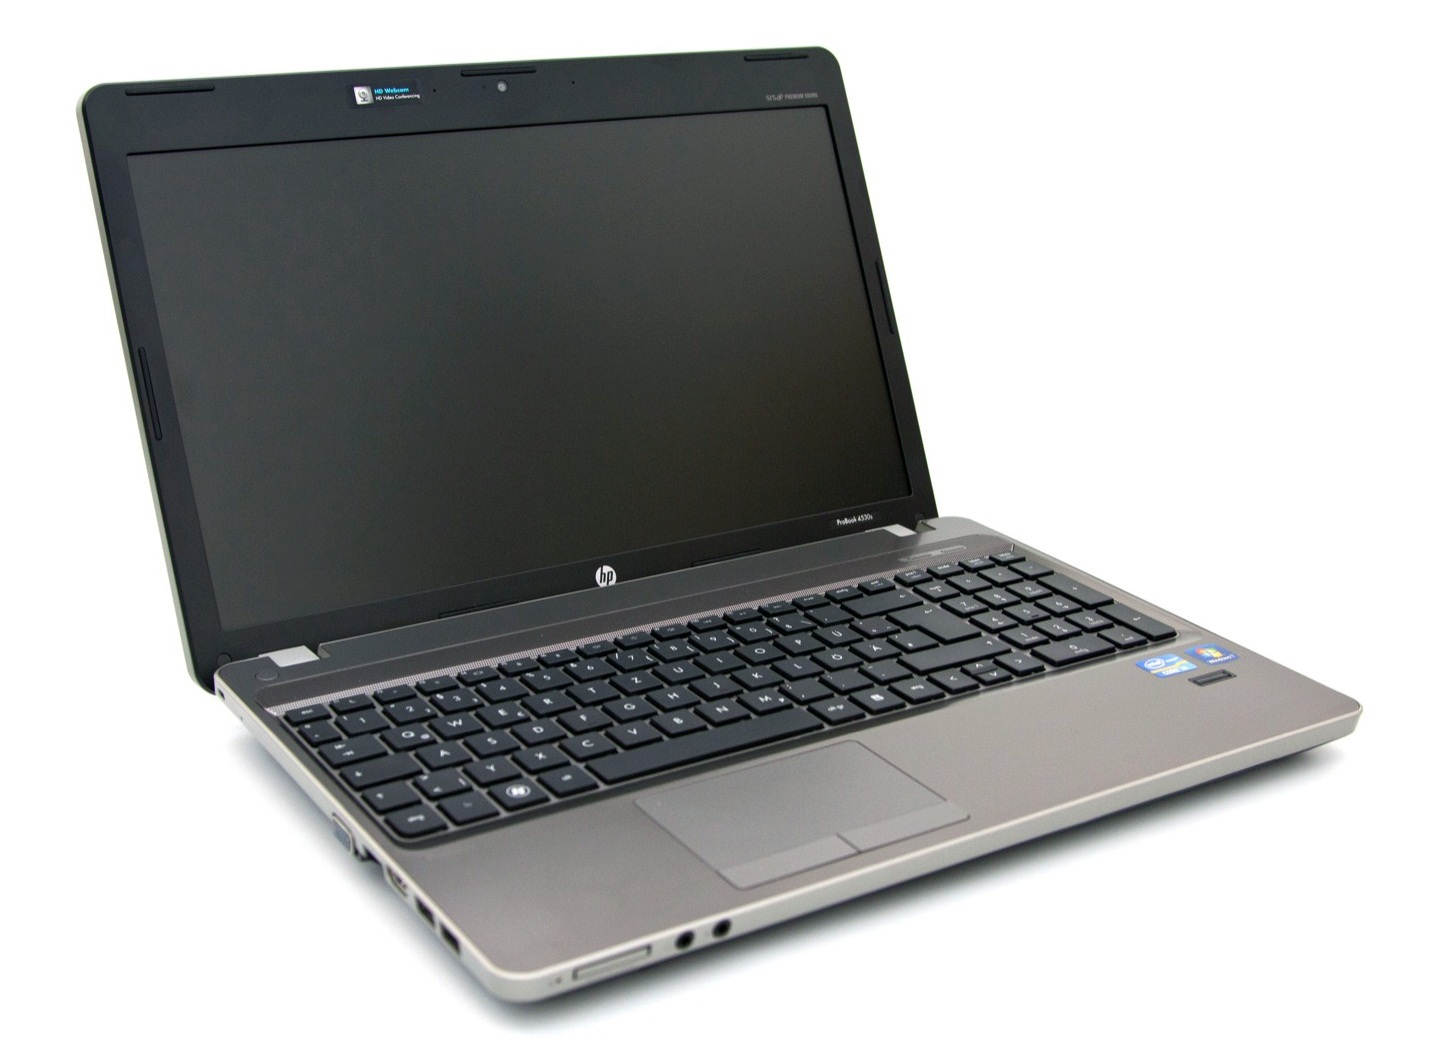 Notebook HP Probook 4530s: characteristics, comparison with peers and reviews of performance 35